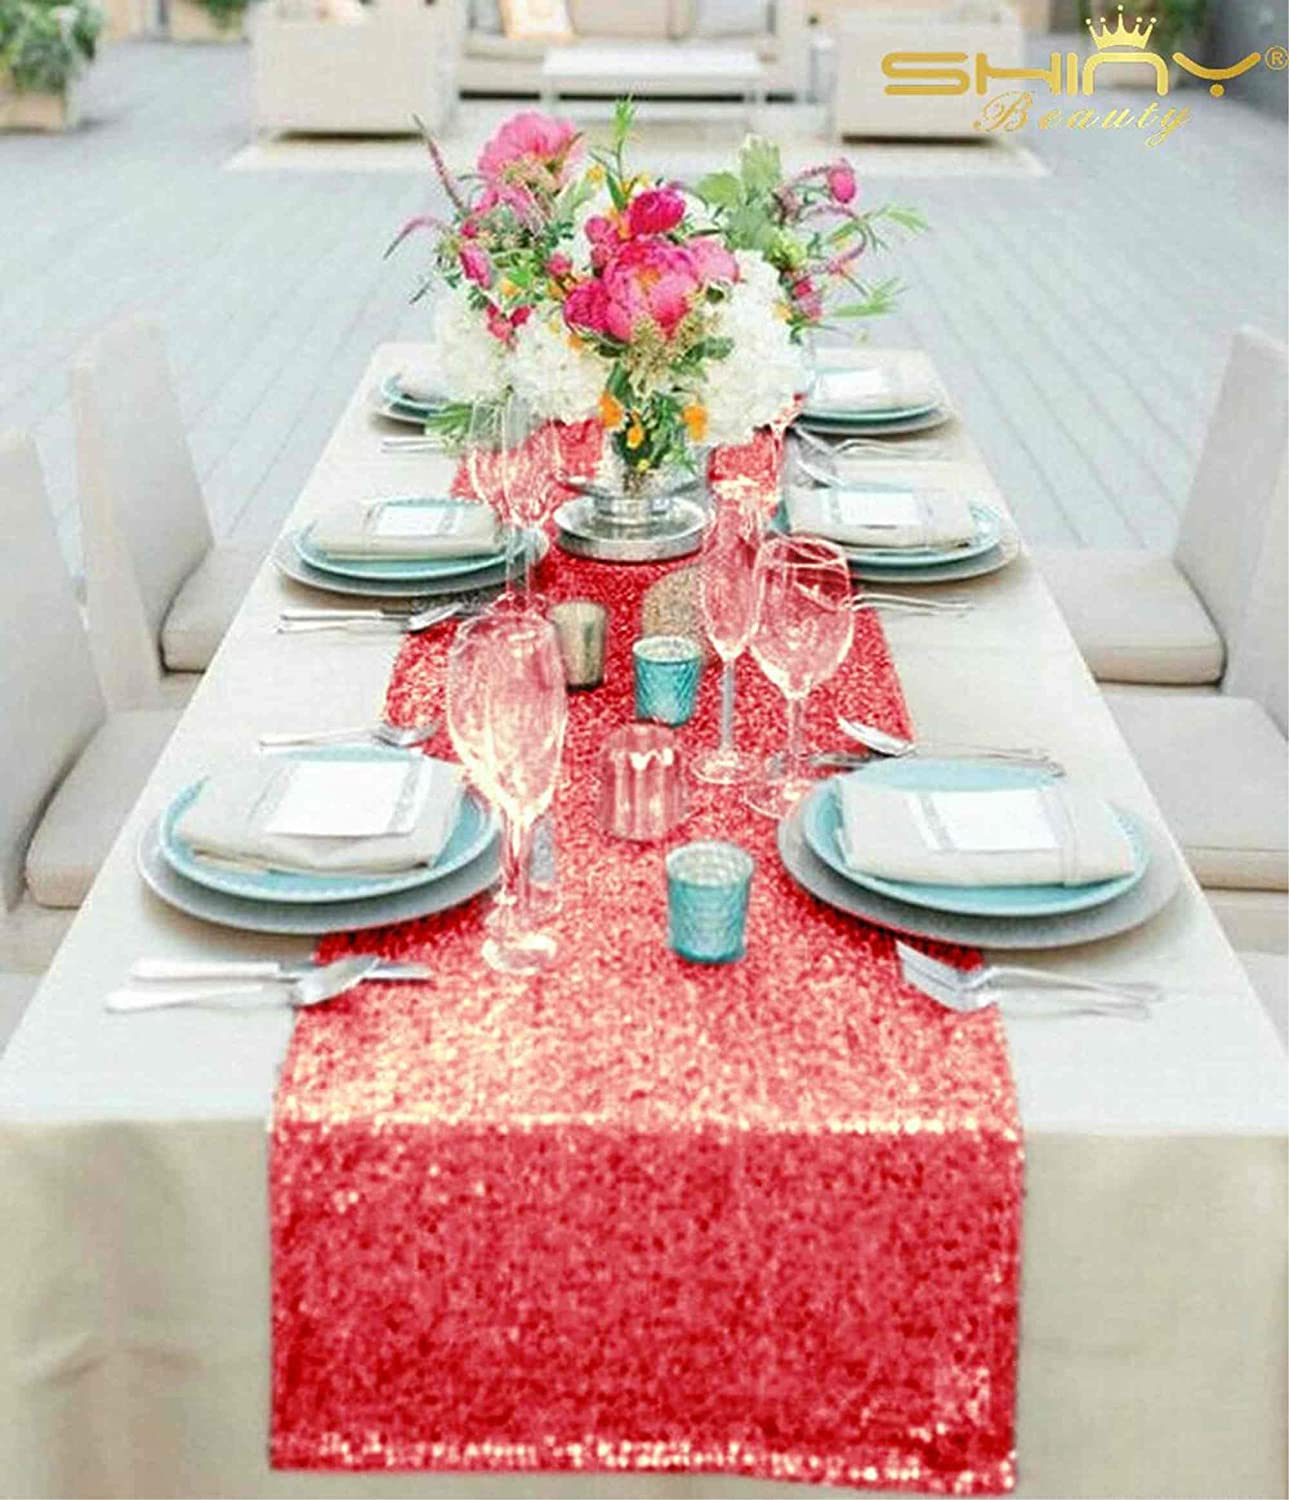 ShinyBeauty Sparkly Red Sequin Table Runner For Wedding/Events Decoration 30*180cm (Can Choose Your Color) (Red Color) : Amazon.co.uk: Kitchen & Home